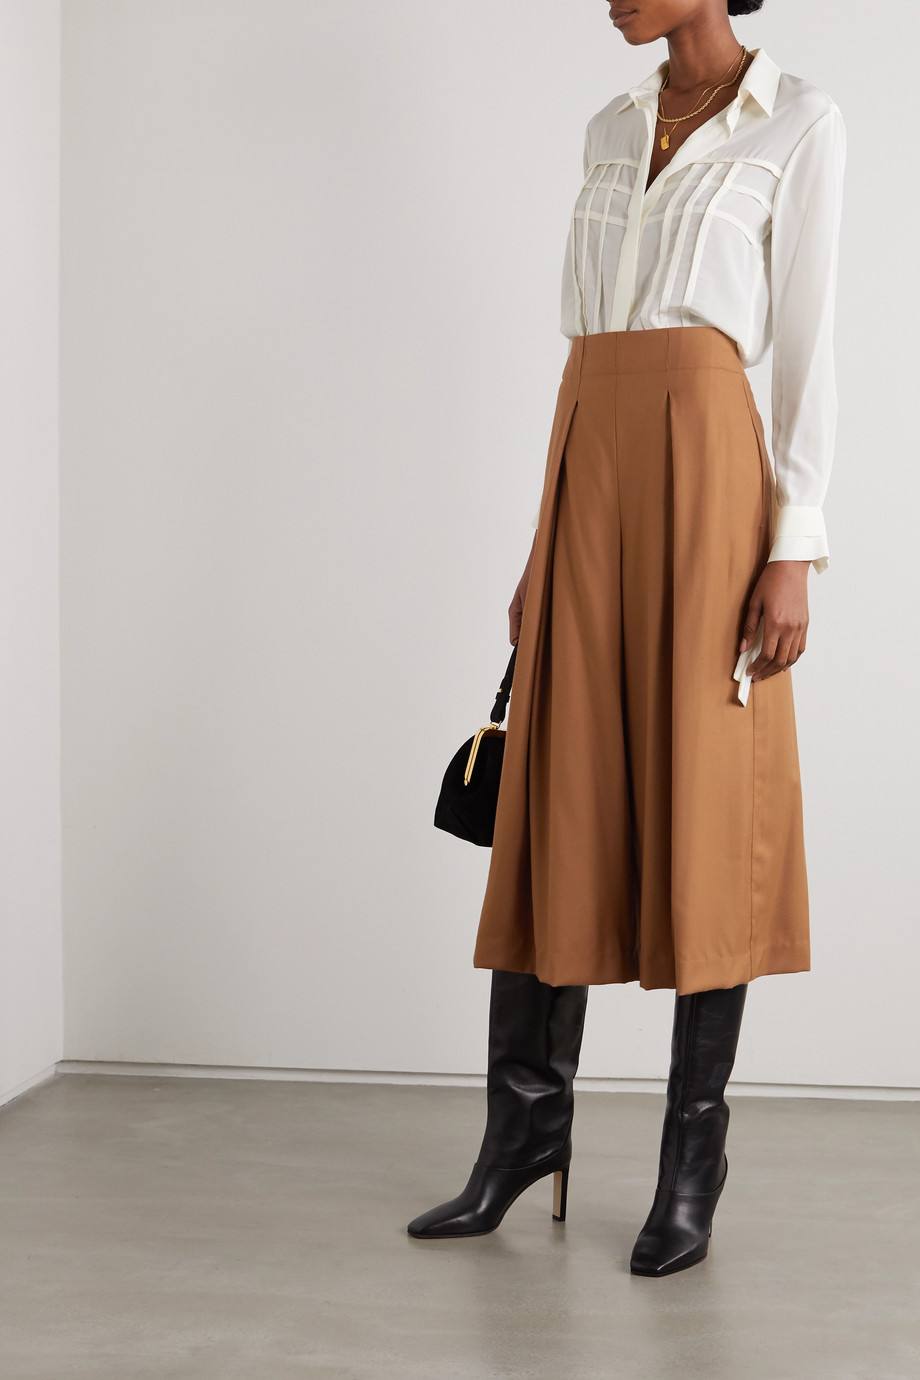 YOOX NET-A-PORTER FOR THE PRINCE'S FOUNDATION Pleated merino wool culottes